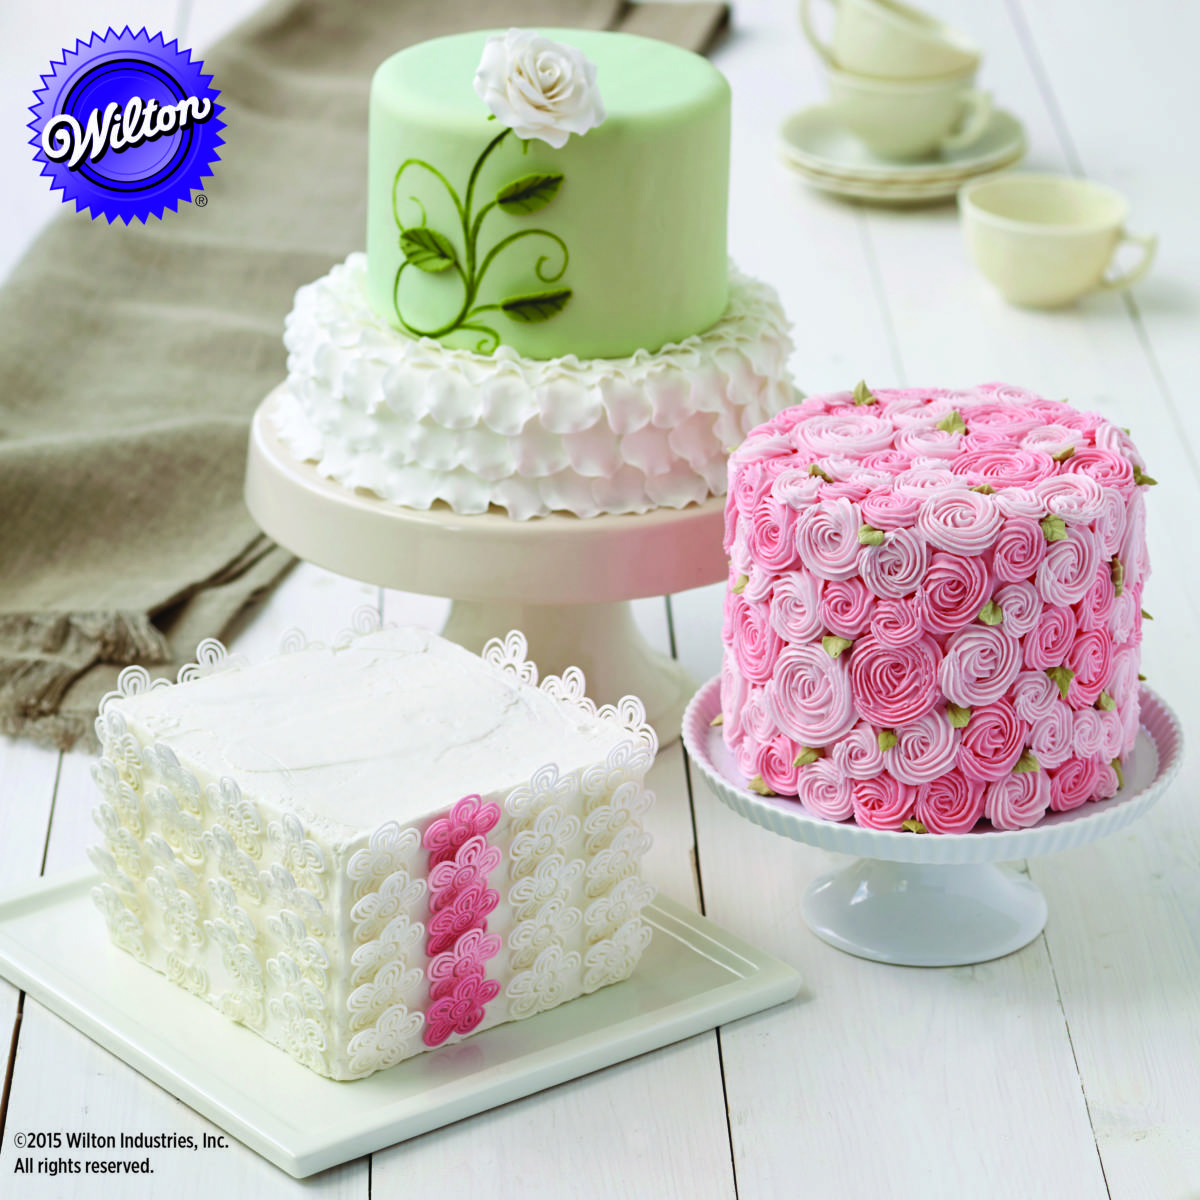 Cake Decorating Class Description : WIN ONE OF TWO WILTON CAKE & CUPCAKE DECORATING COURSES ...